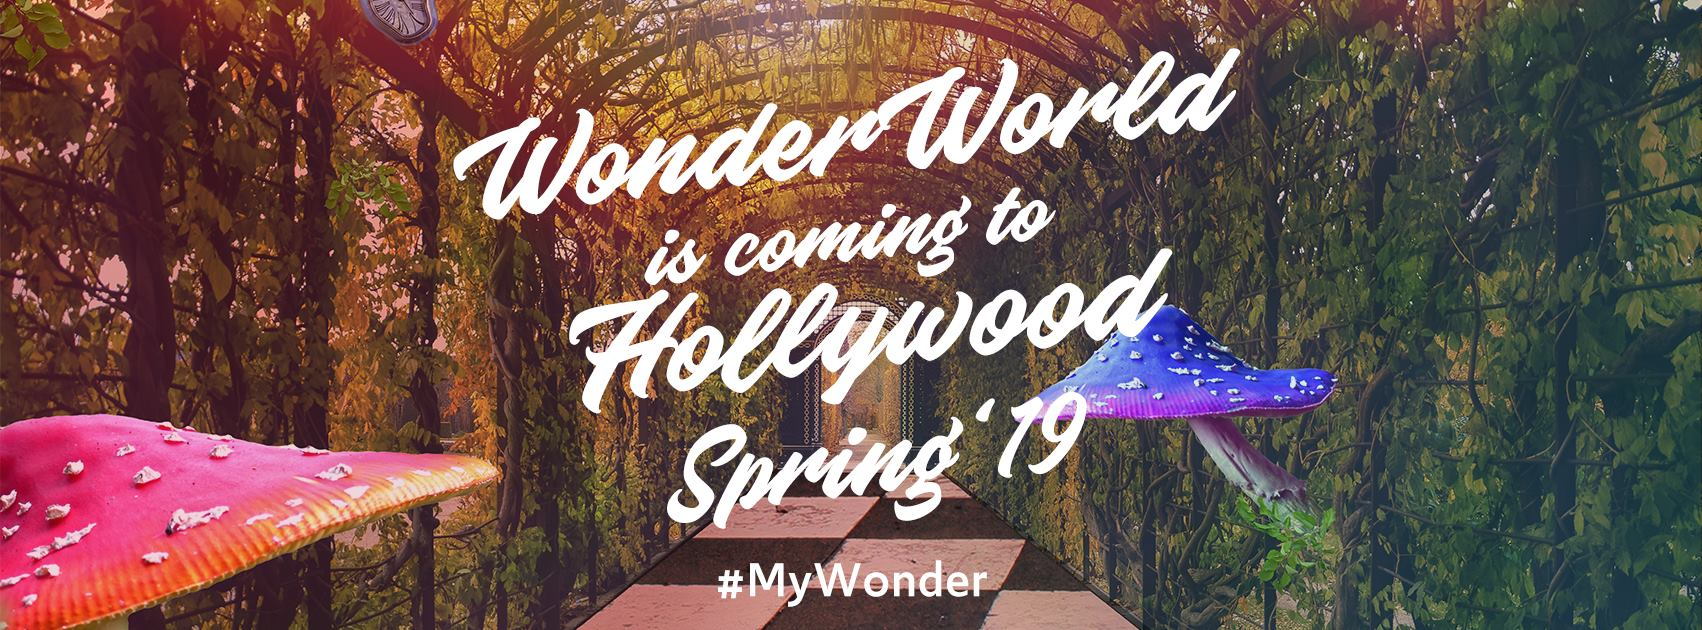 Wonder World LA is located at 7080 Hollywood Blvd.